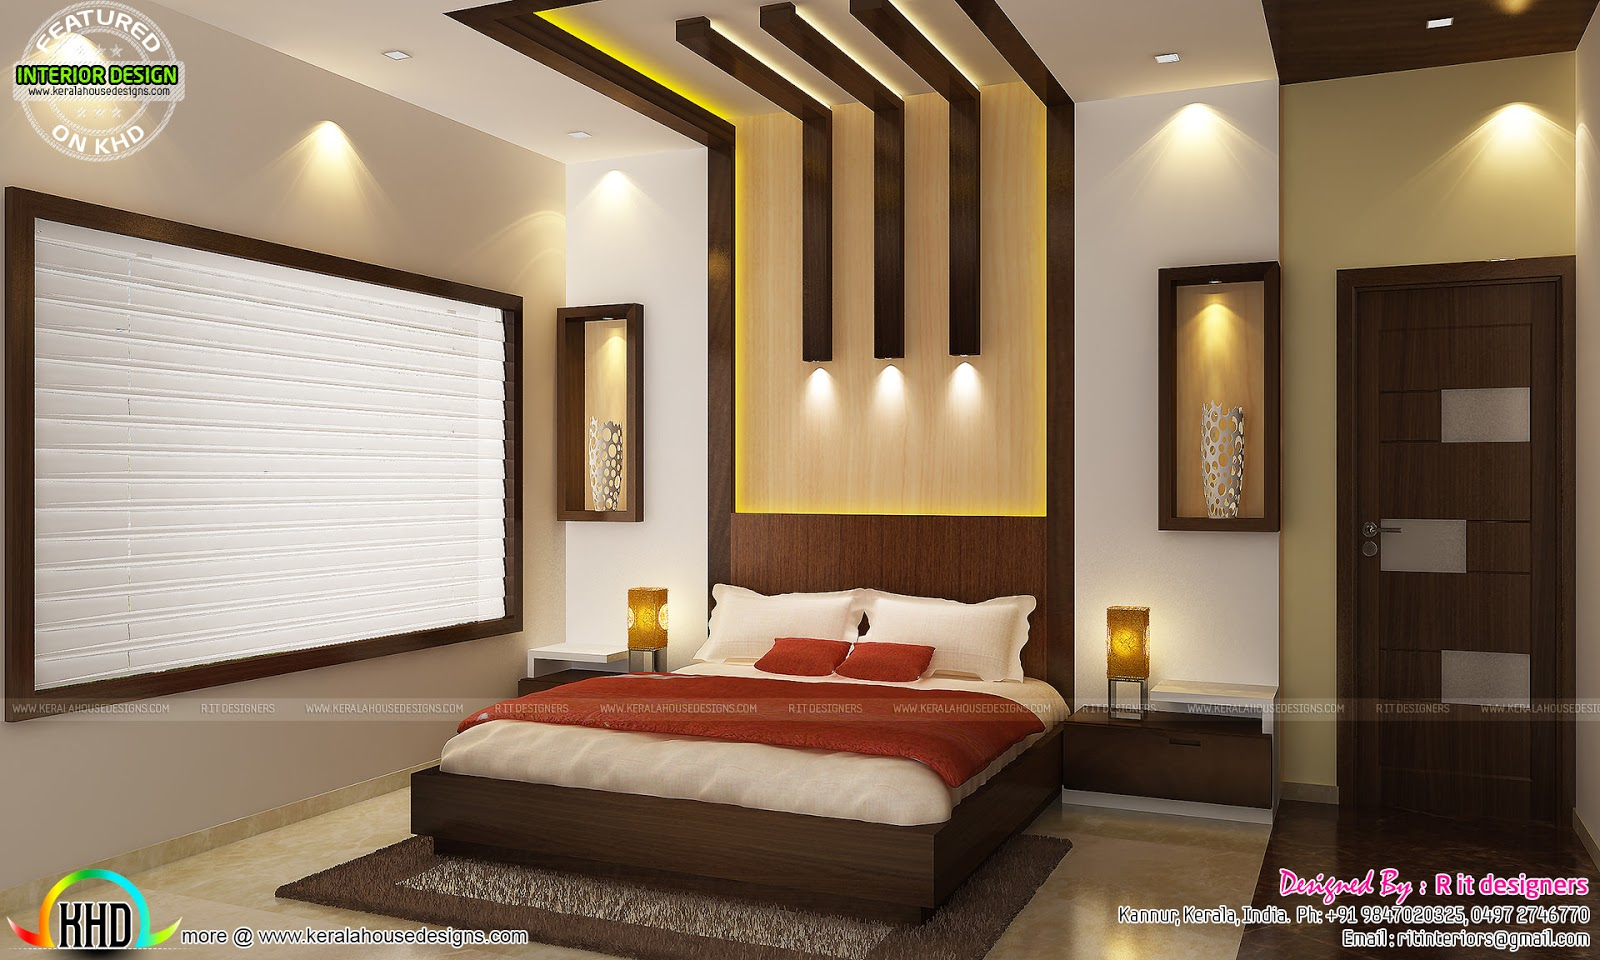 Kitchen living bedroom dining interior decor kerala home design and floor plans Interior design ideas for kerala houses